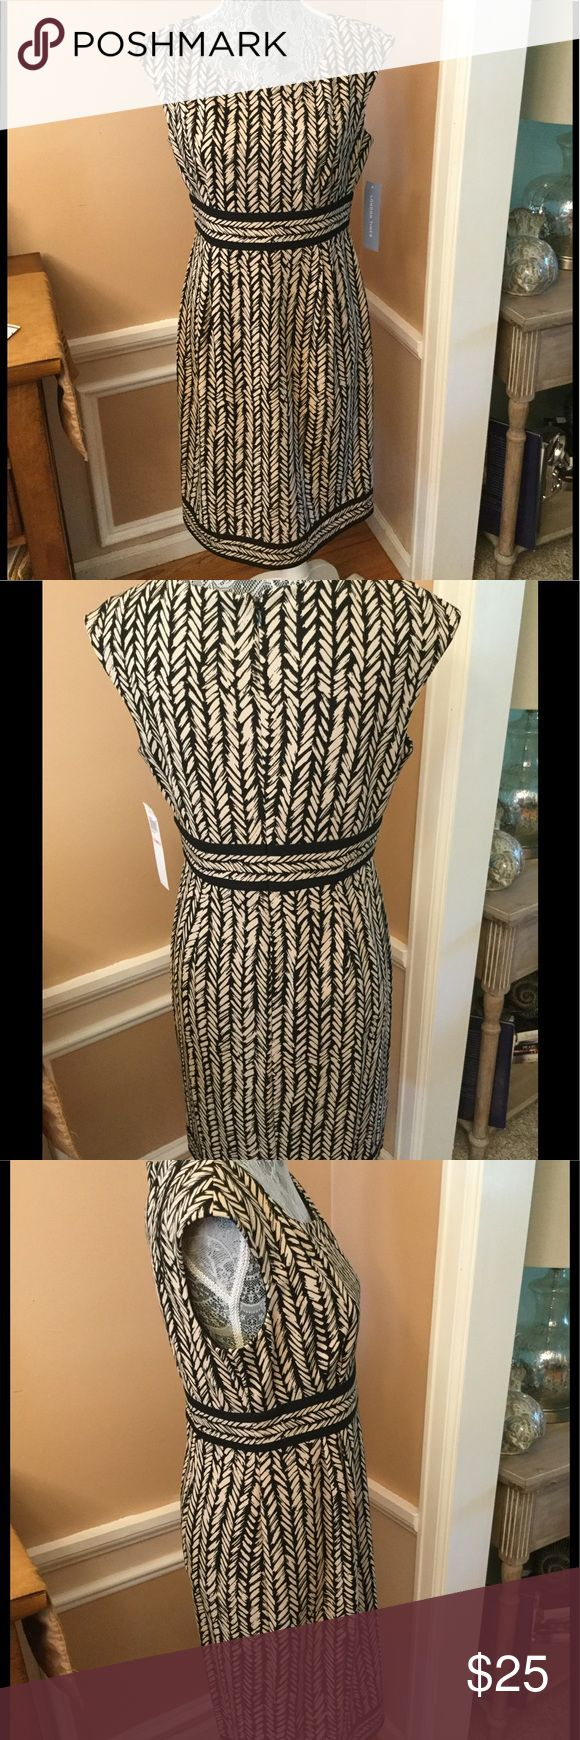 "NWT TAUPE AND BLACK GEOMETRIC HY WAISTED DRESS This low neck dress , has a wide waist band, which also has the same design on bottom of dress. back zipper. 96% polyester, 4% spandex. Dry clean only. Bust 38"", hy waist 31"", length 38"". Very stunning. London Times Dresses Midi"